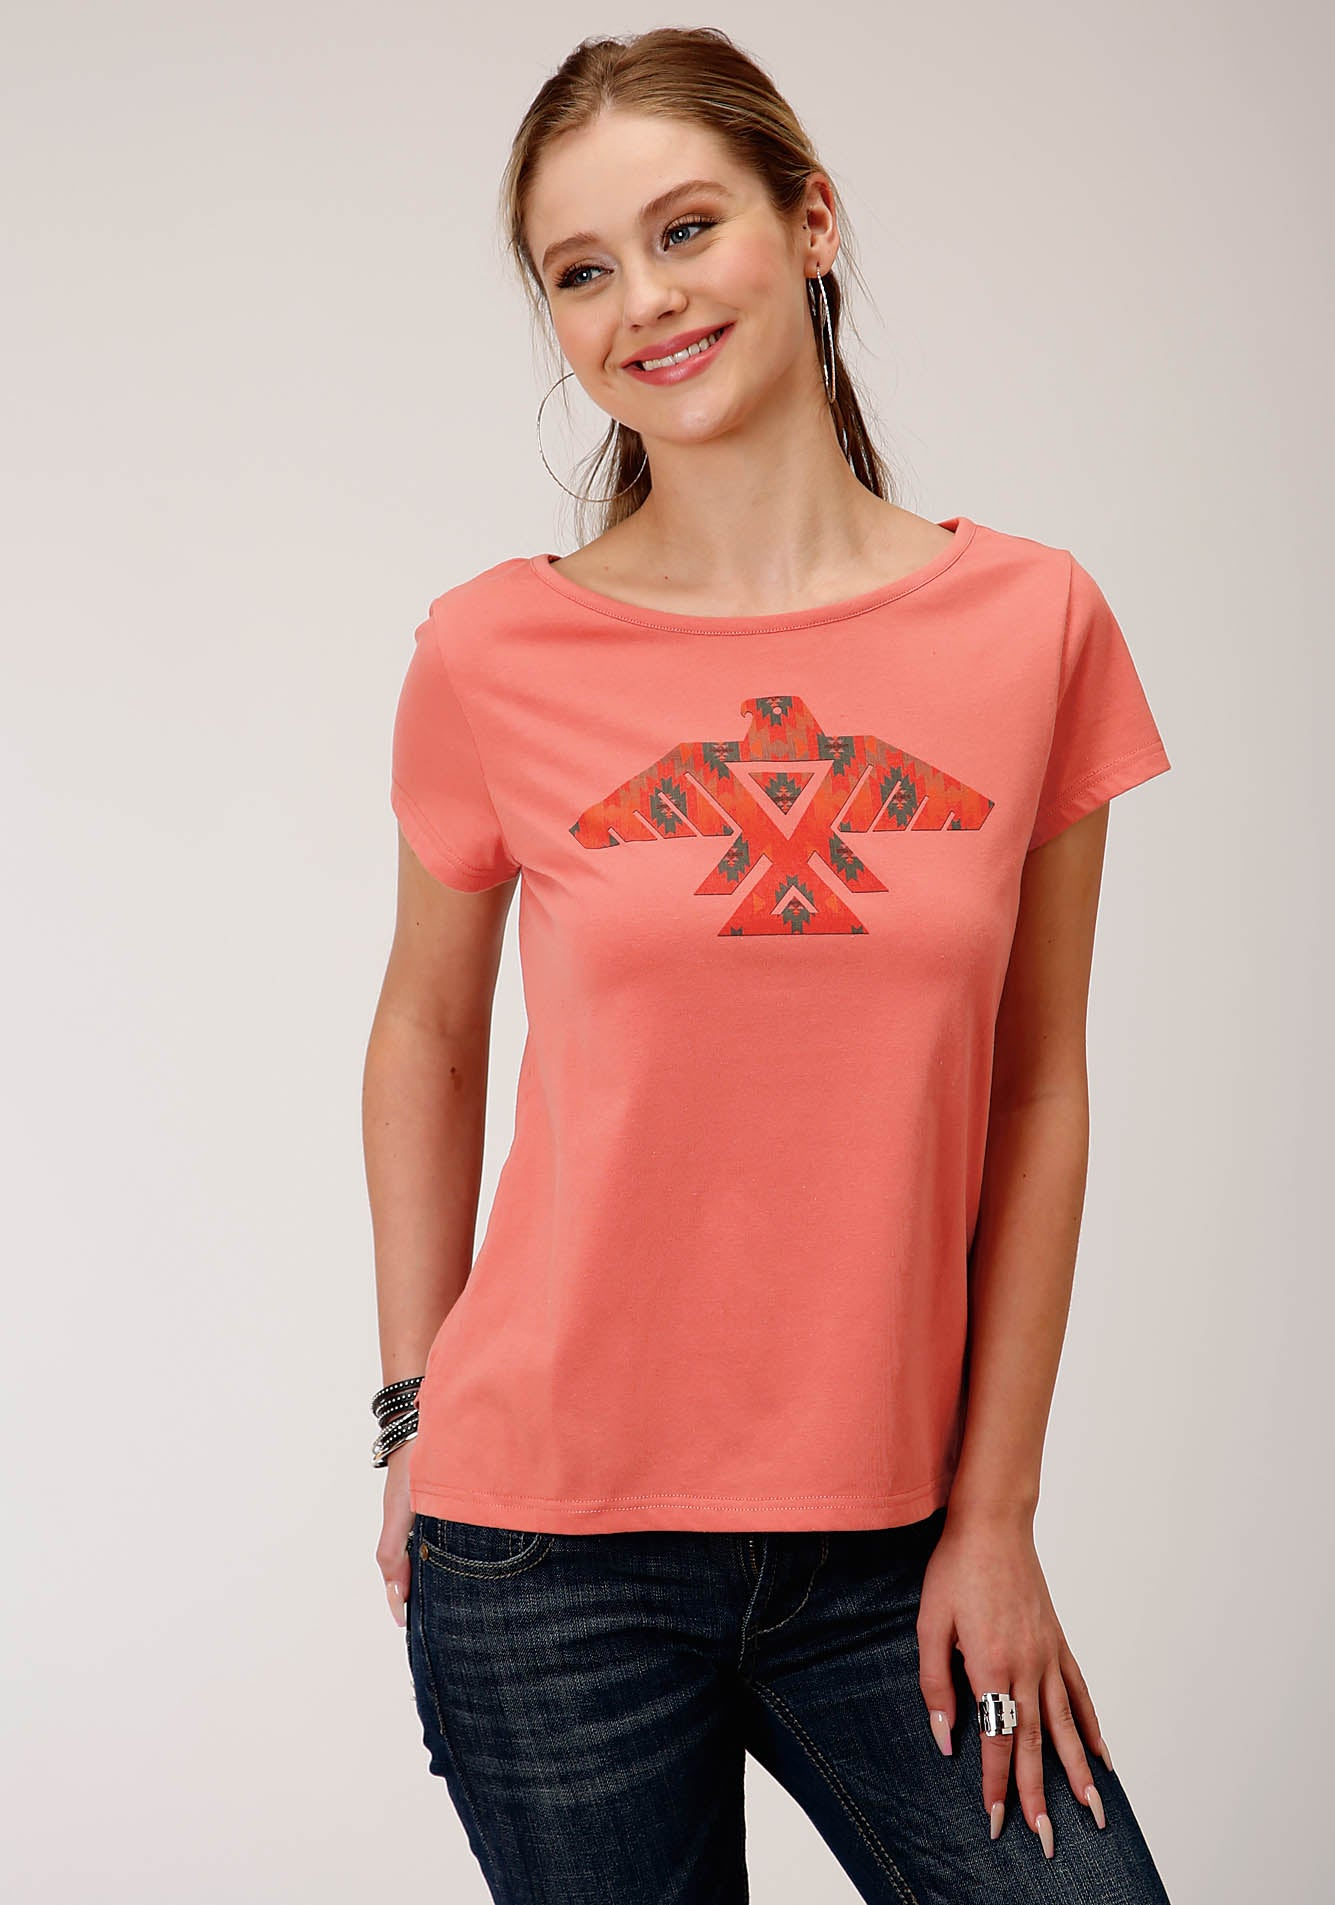 ROPER WOMENS PINK 00245 COTTON POLY SS TEE FIVE STAR COLLECTION- SUMMER III SHORT SLEEVE